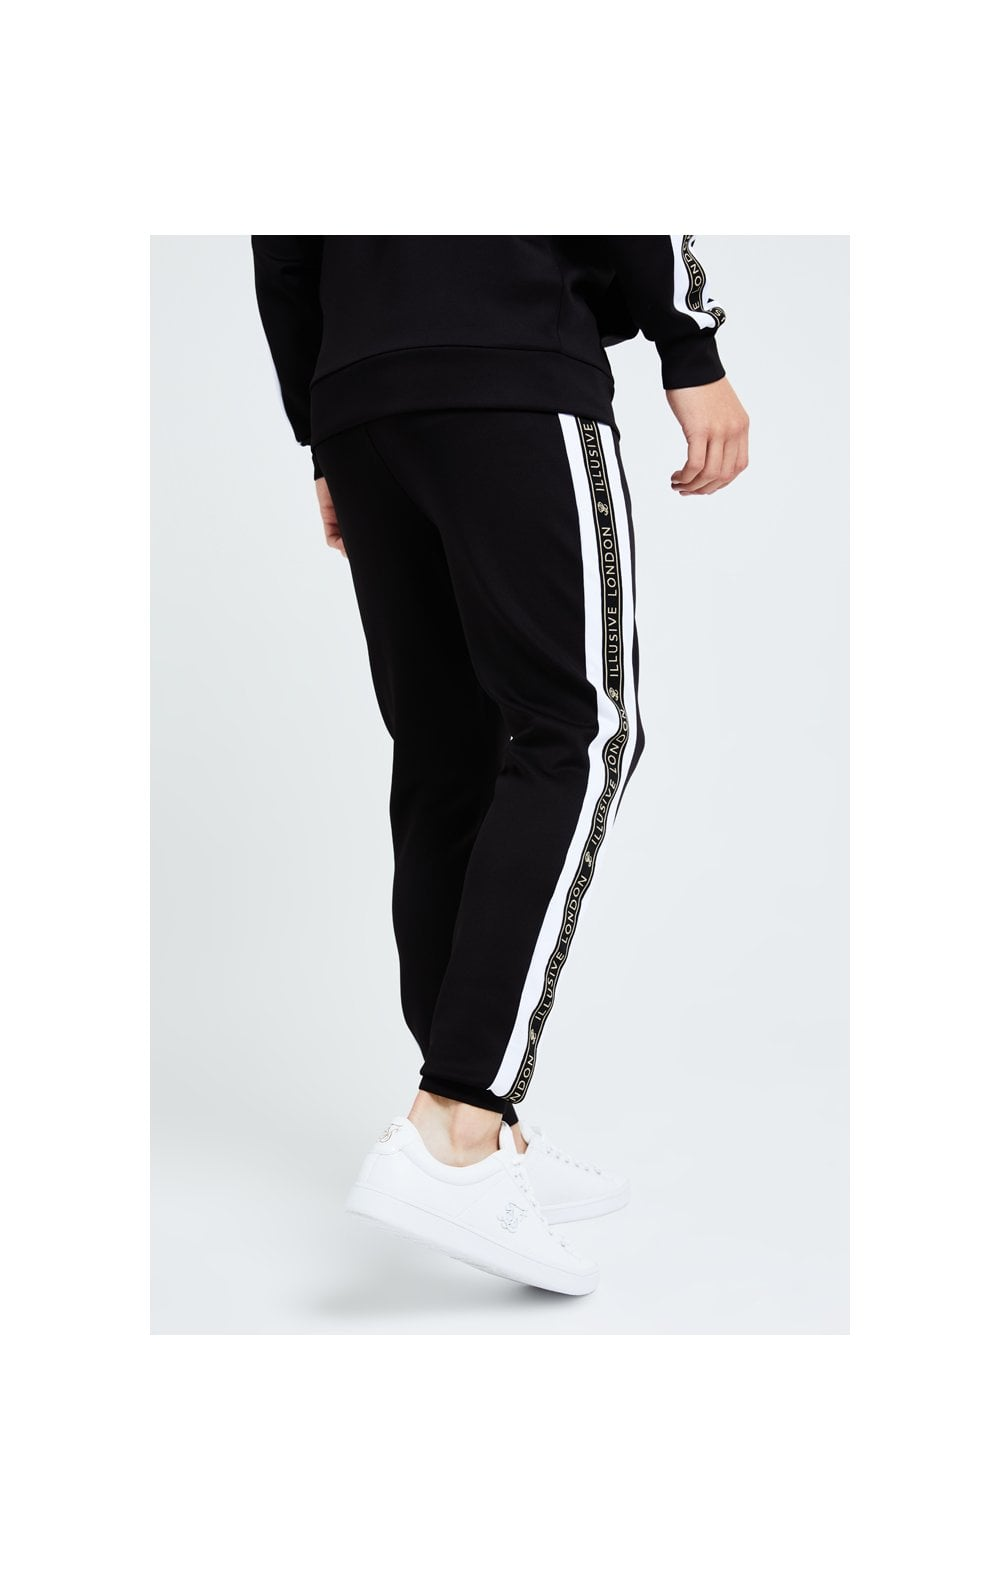 Illusive London Diverge Jogger - Black Gold & White (3)